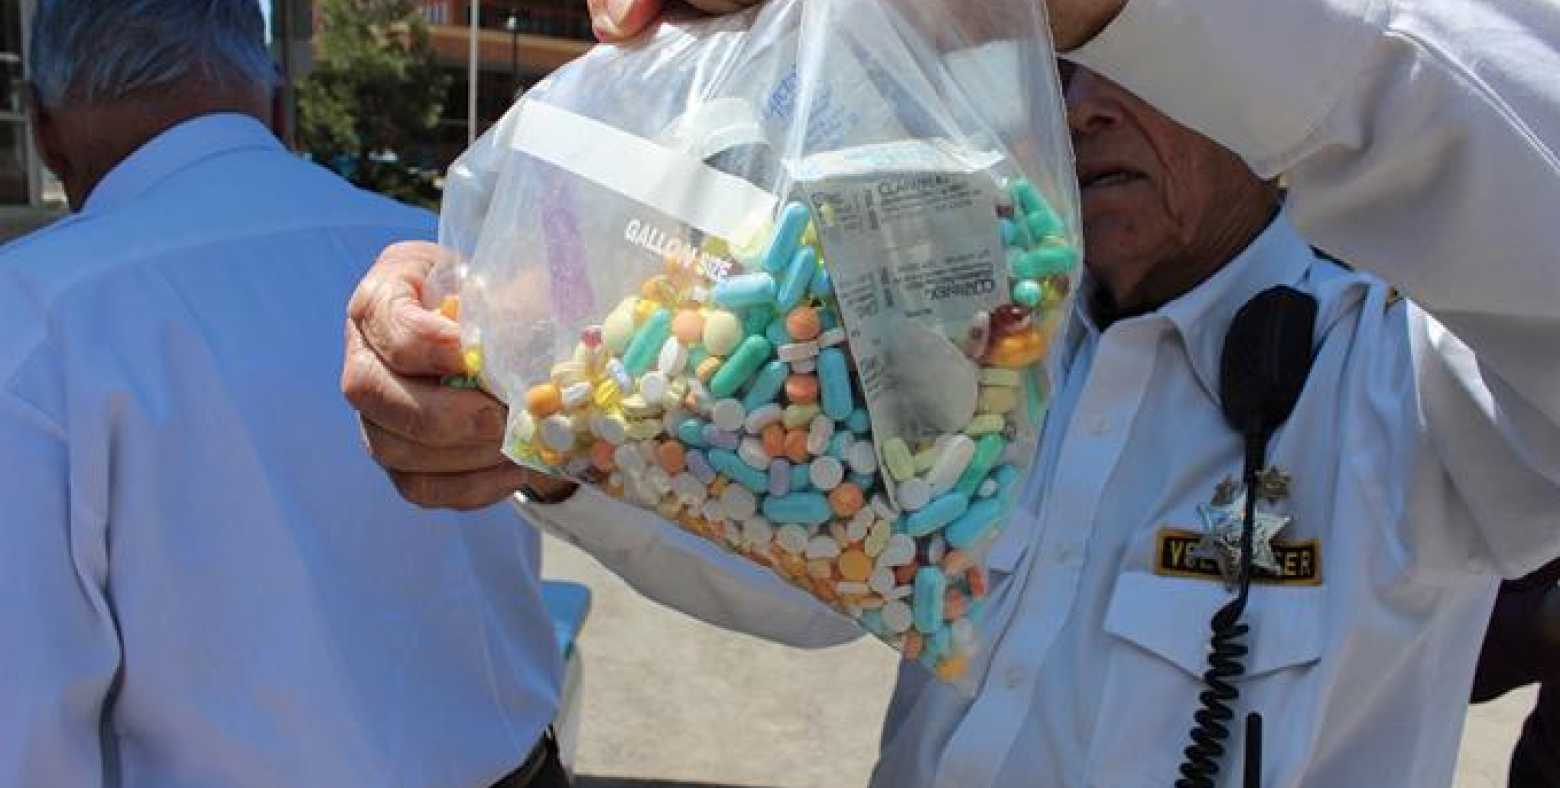 gentleman holding bag of prescription collected from drug take back days